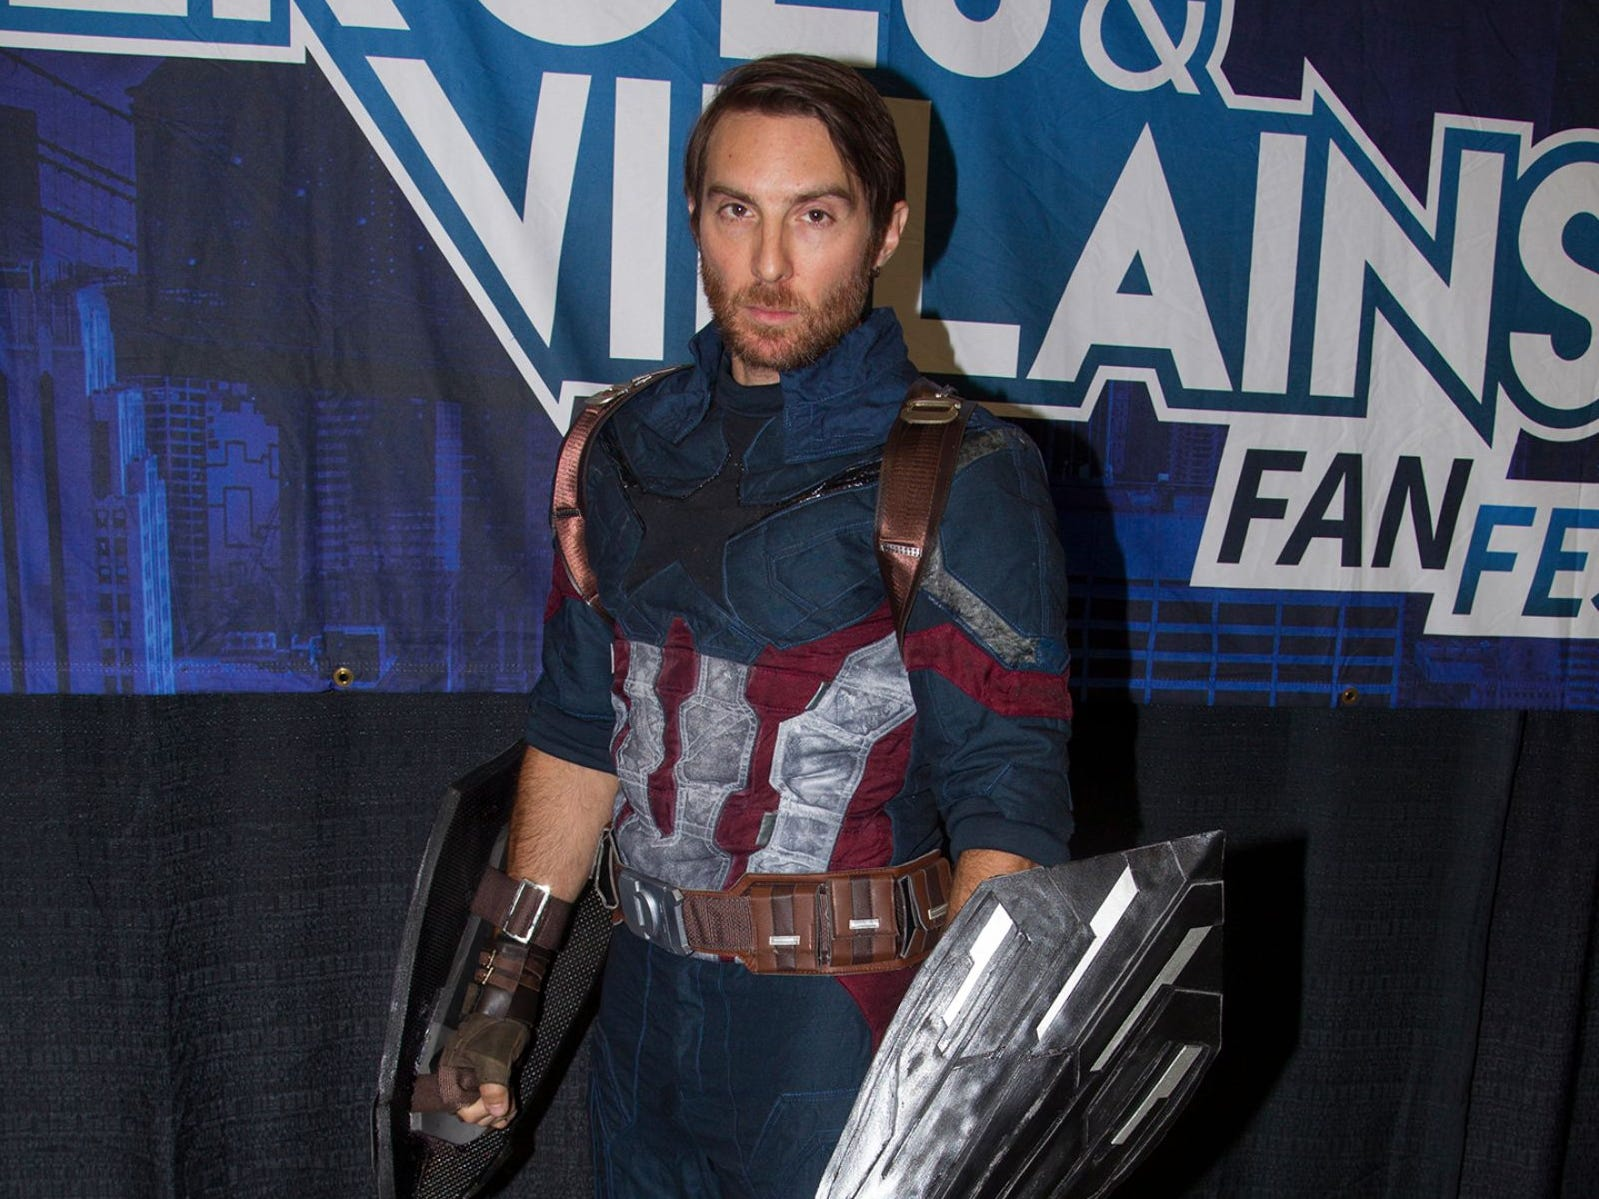 Kevin as Captain America. The 2018 Heroes and Villains Fan Fest took place at the New Jersey Convention & Expo Center. 09/09/2018